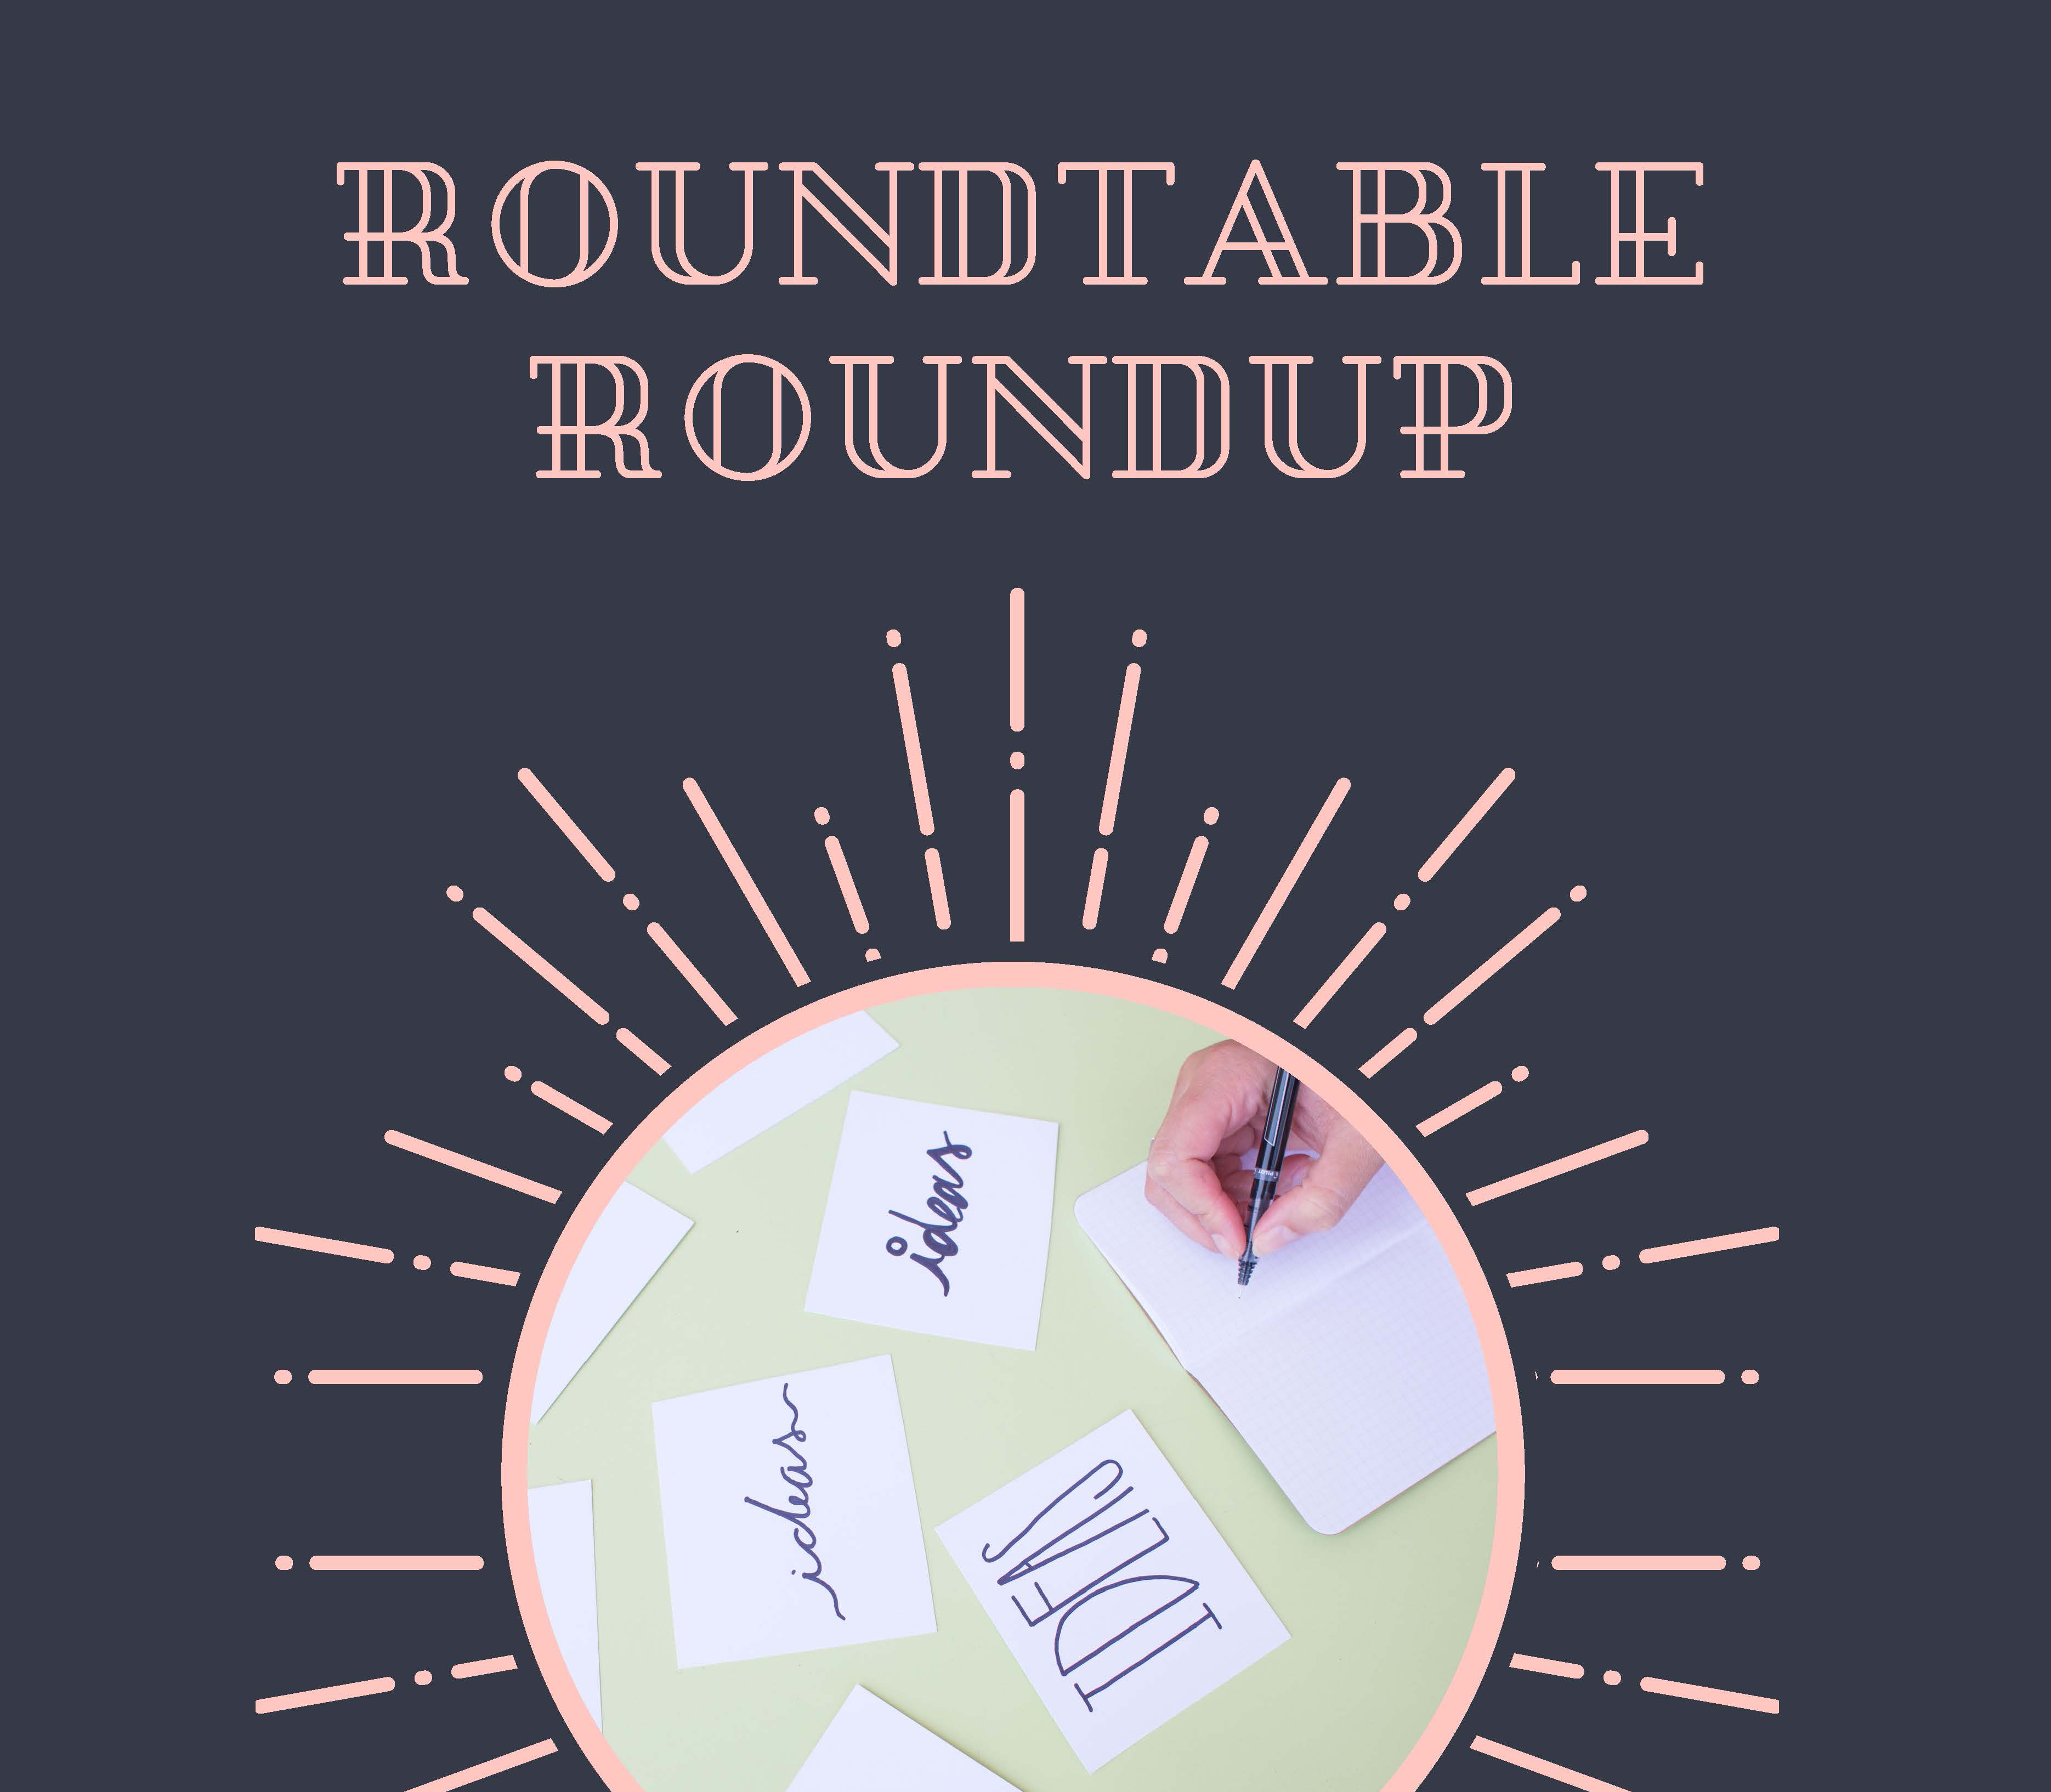 Roundtable Roundup